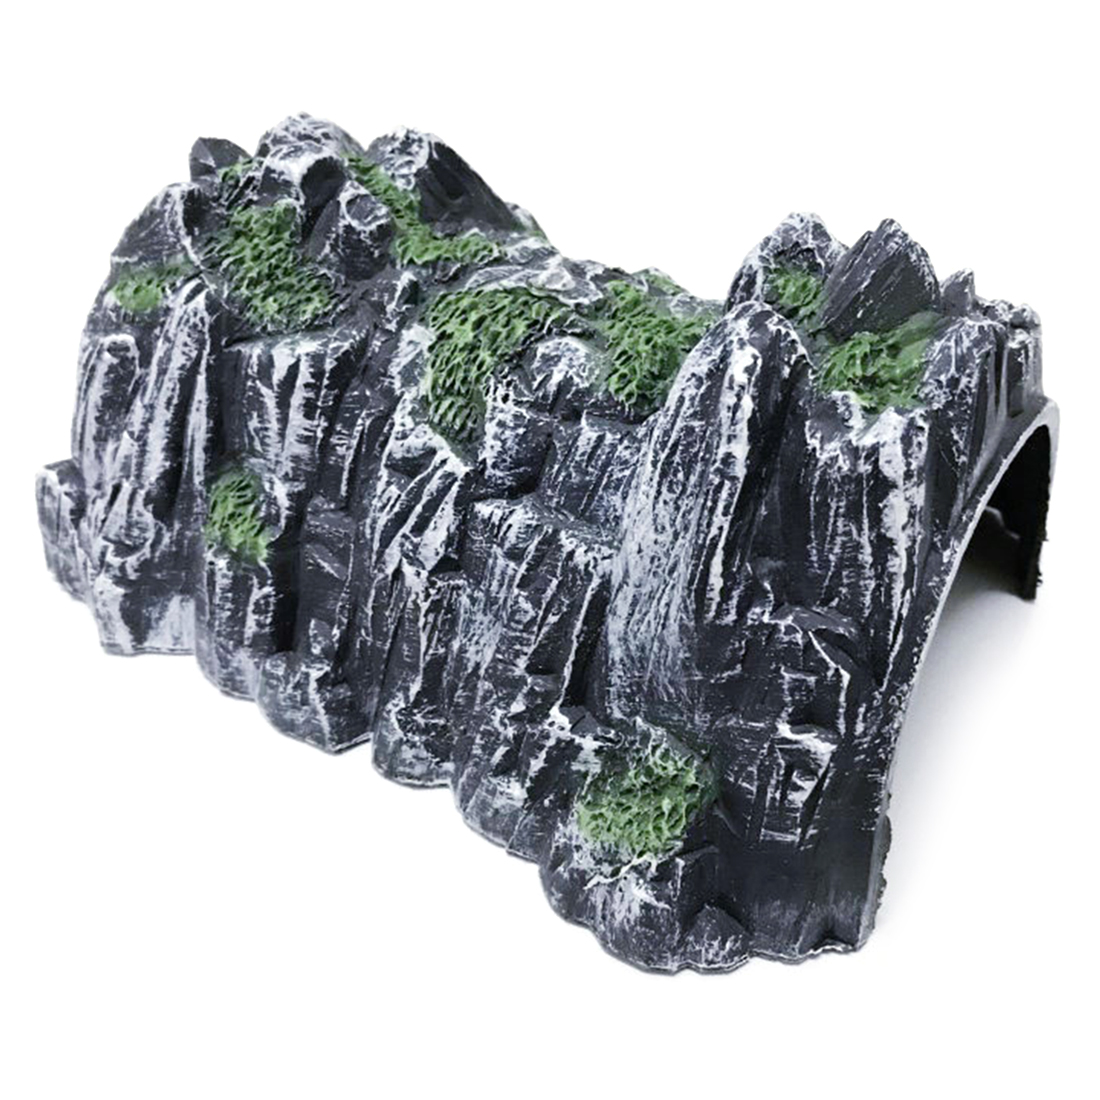 1/2/5pcs Kit 2019 New Arrival 1:150 N Scale 17.8cm Cave Tunnel Model For DIY Architectural Sand Table